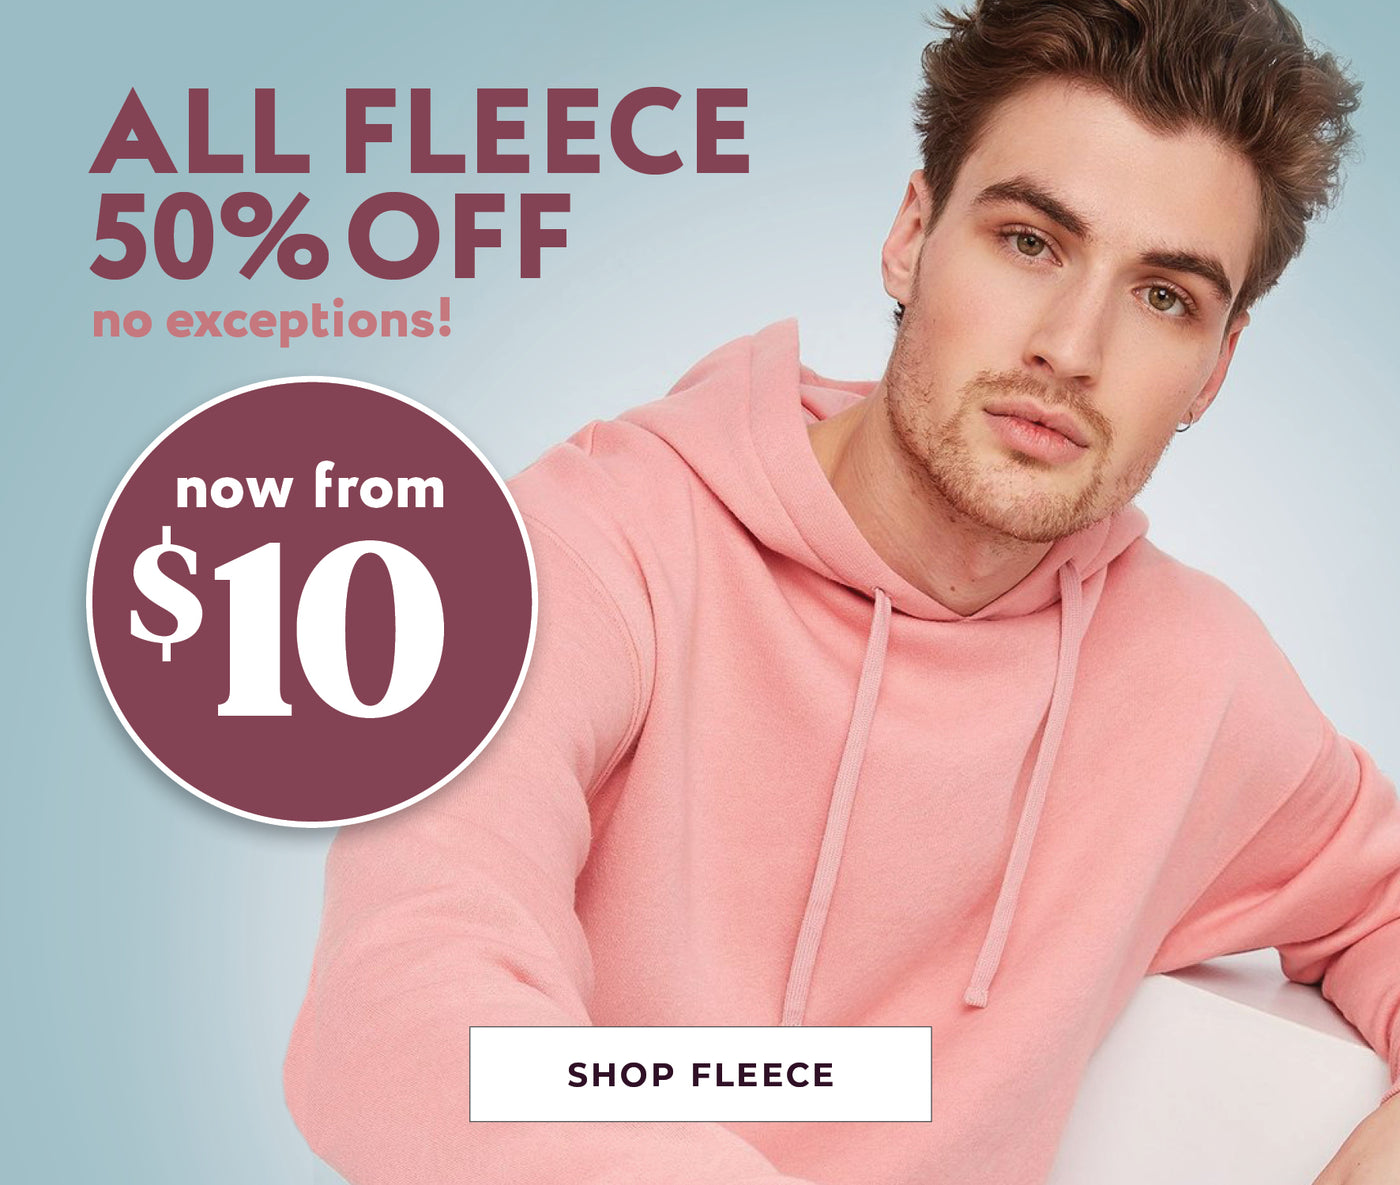 All Mens Fleece - 50% Off - Now from $10